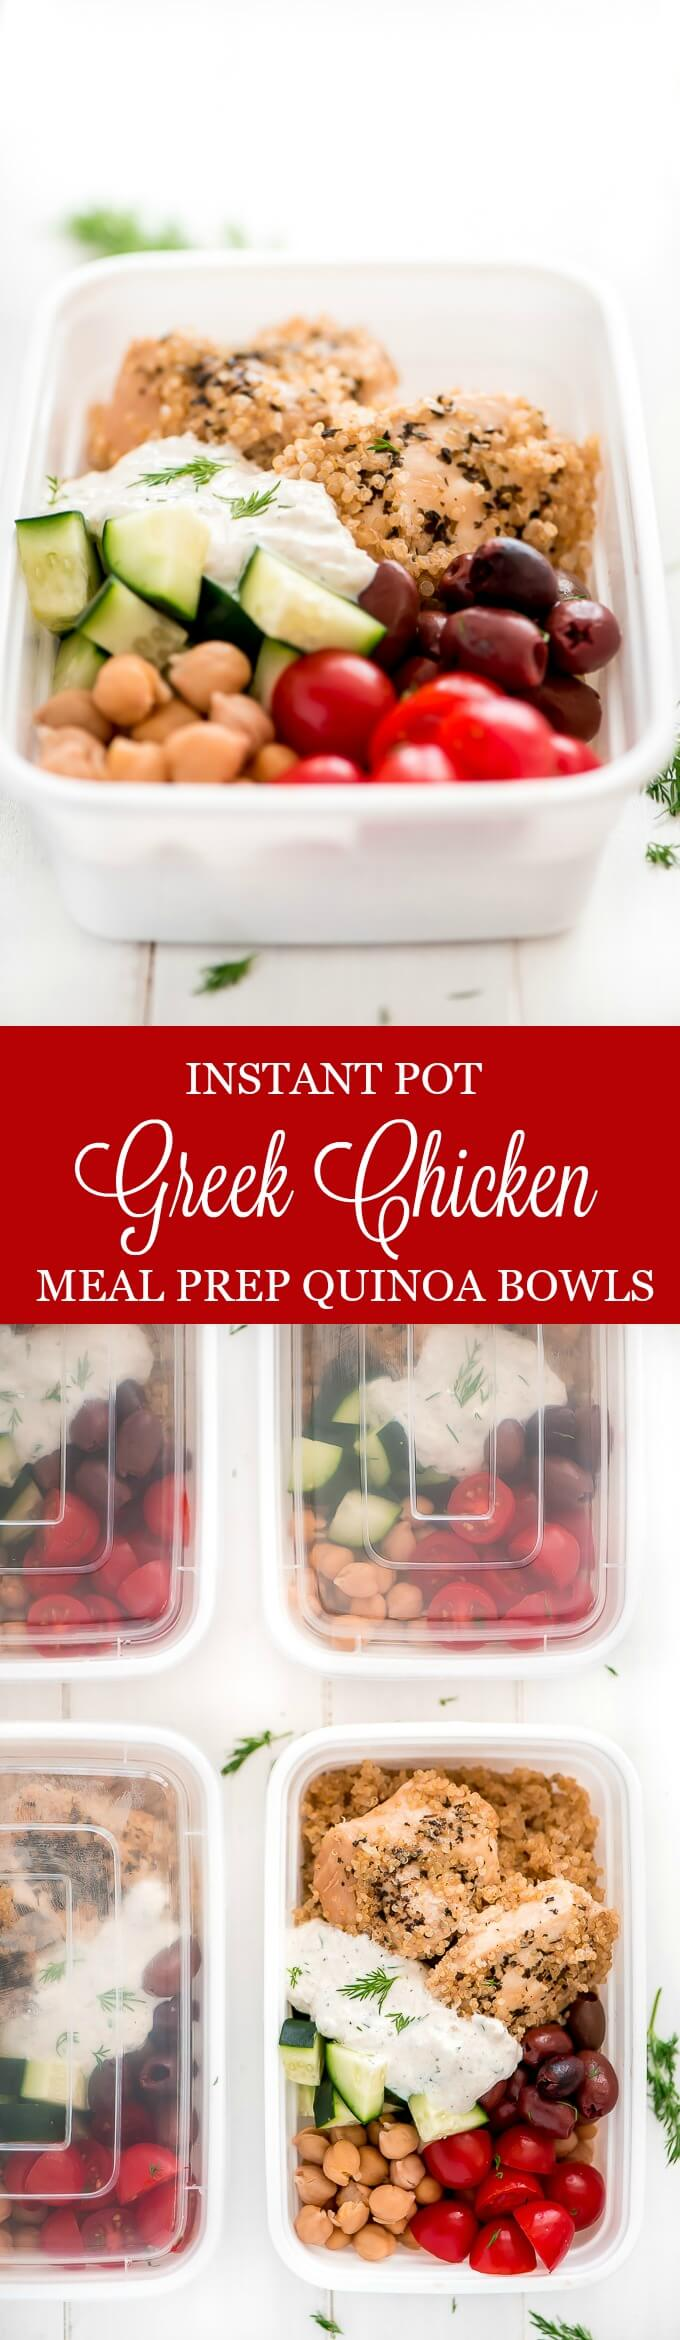 Greek Chicken Quinoa Bowls are a refreshing healthy dinner that comes together quickly in the Instant Pot and can be assembled in advance for a grab-and-go meal.